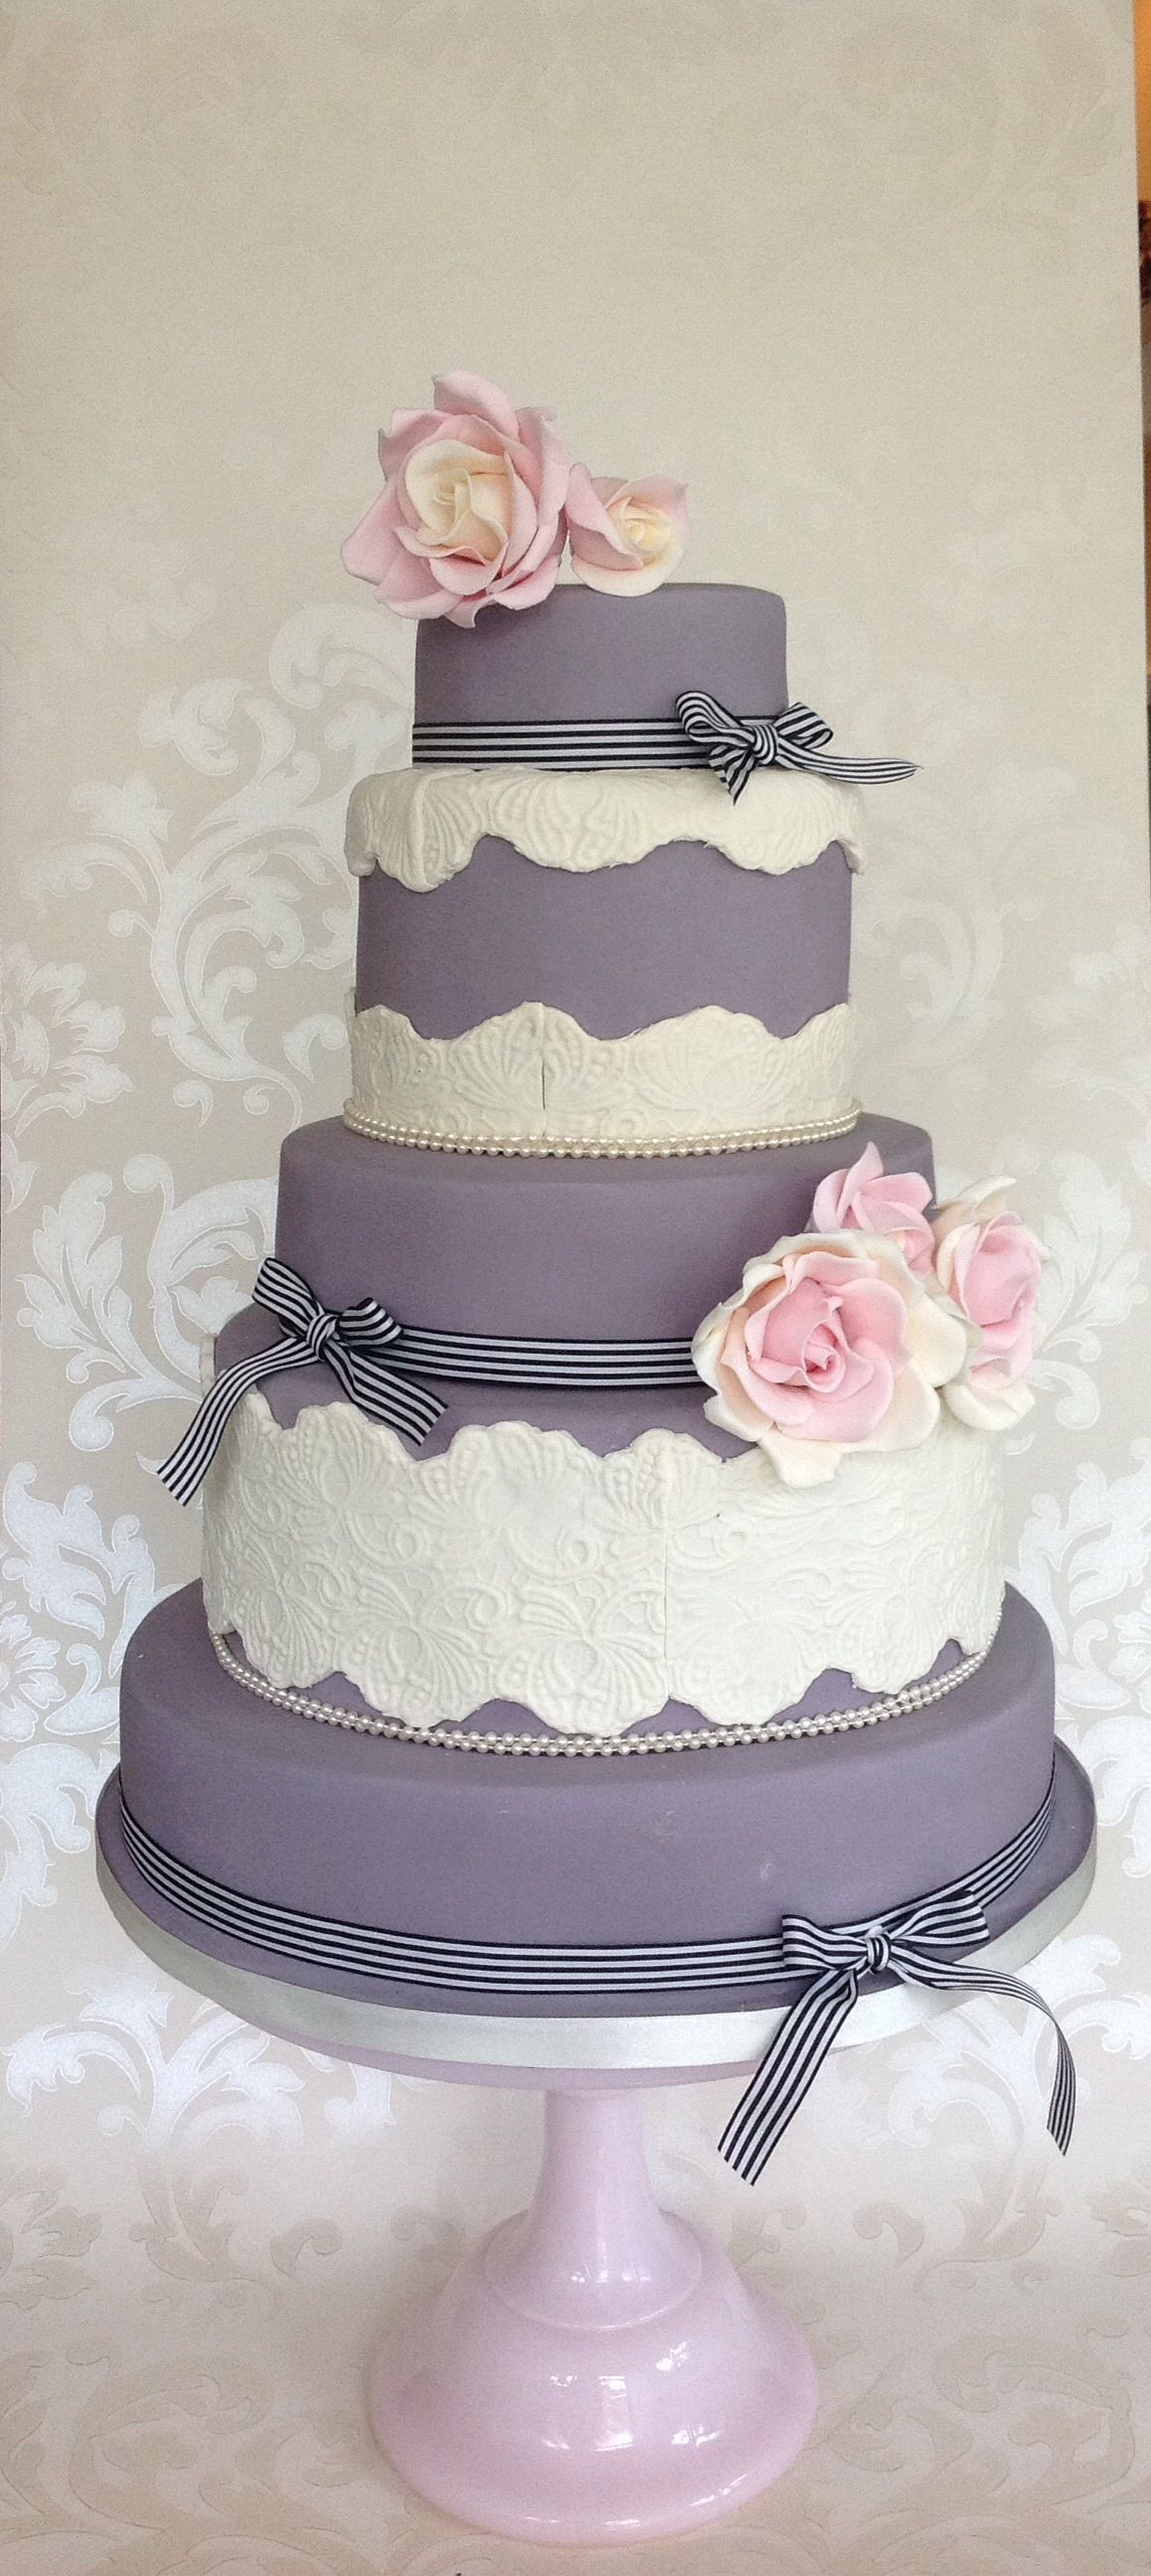 beautiful 5 tier wedding cake with lace and pearls. pastel pink